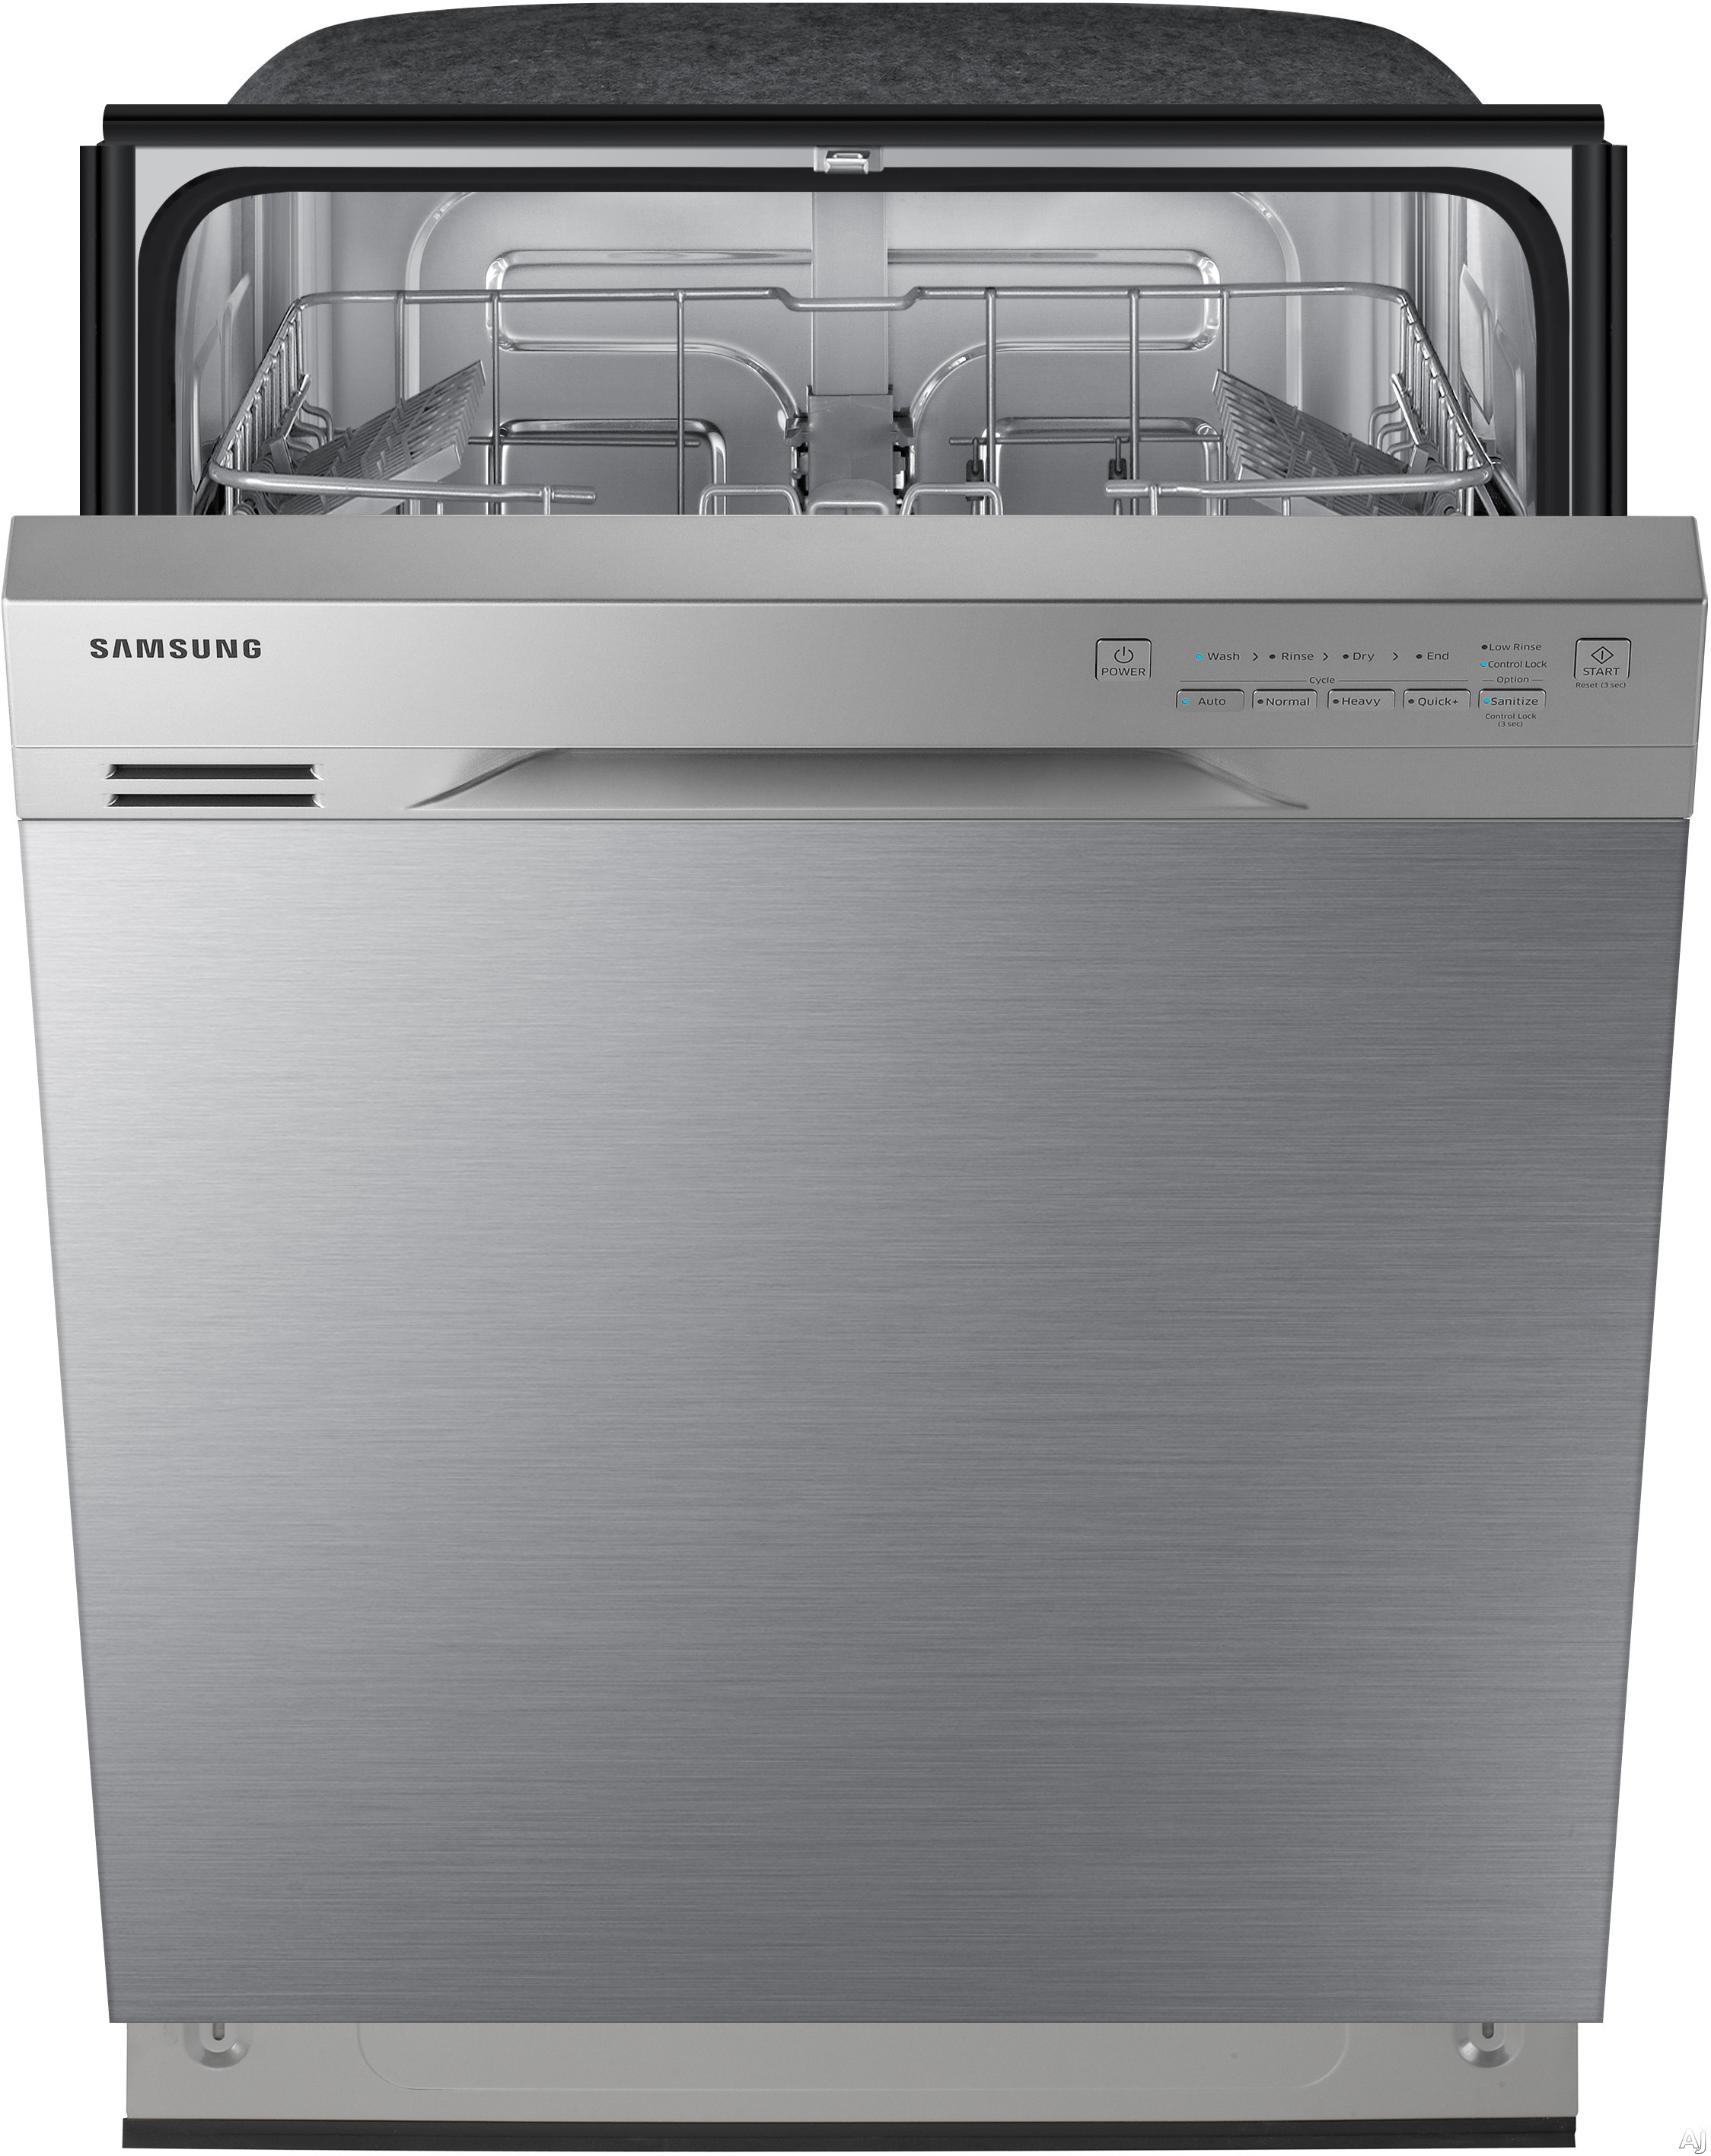 samsung dishwasher dw80j3020us installation manual